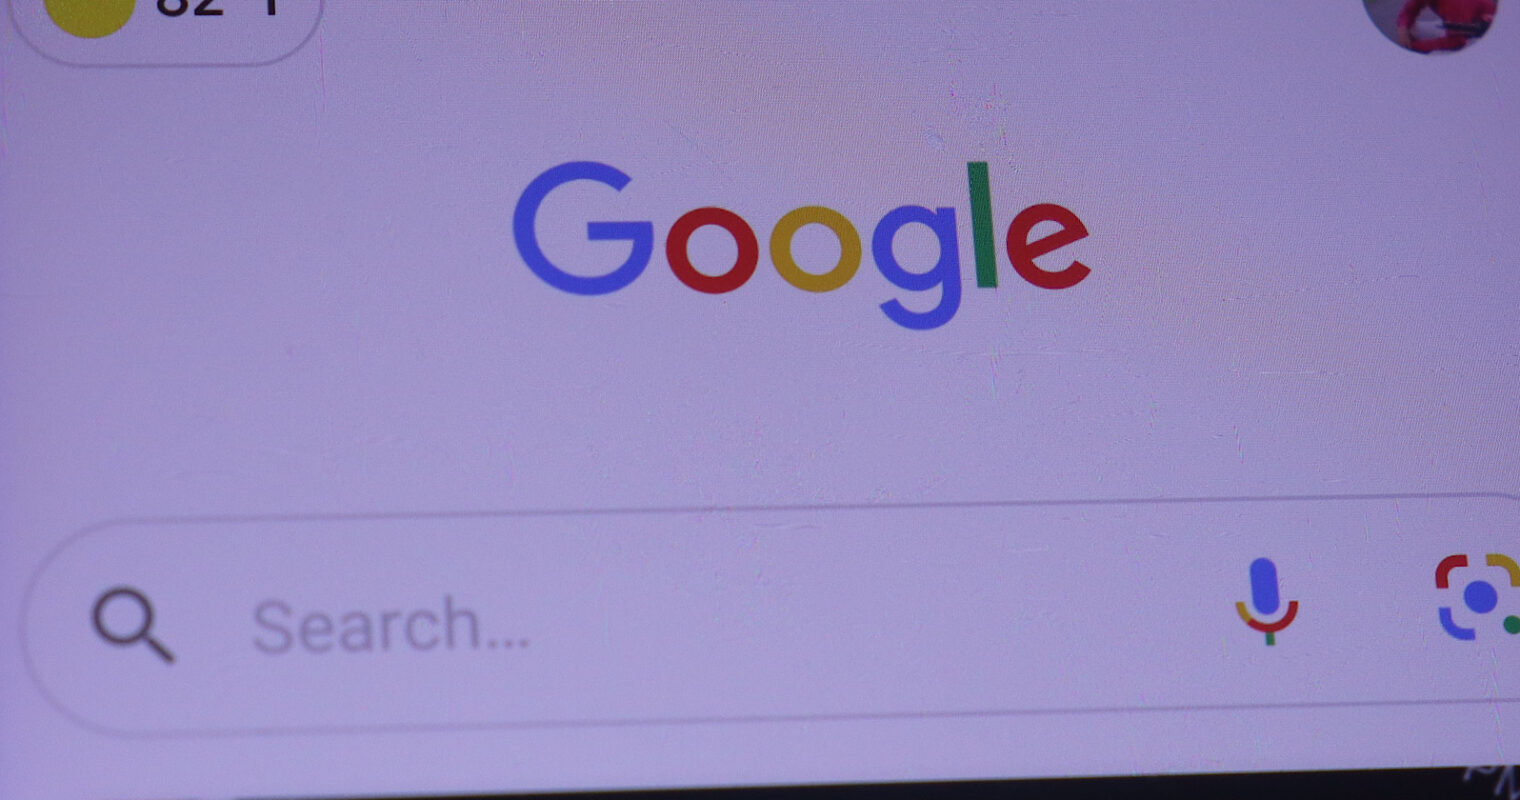 Google: Sites Can Safely Display Pop-Ups On Temporary Basis